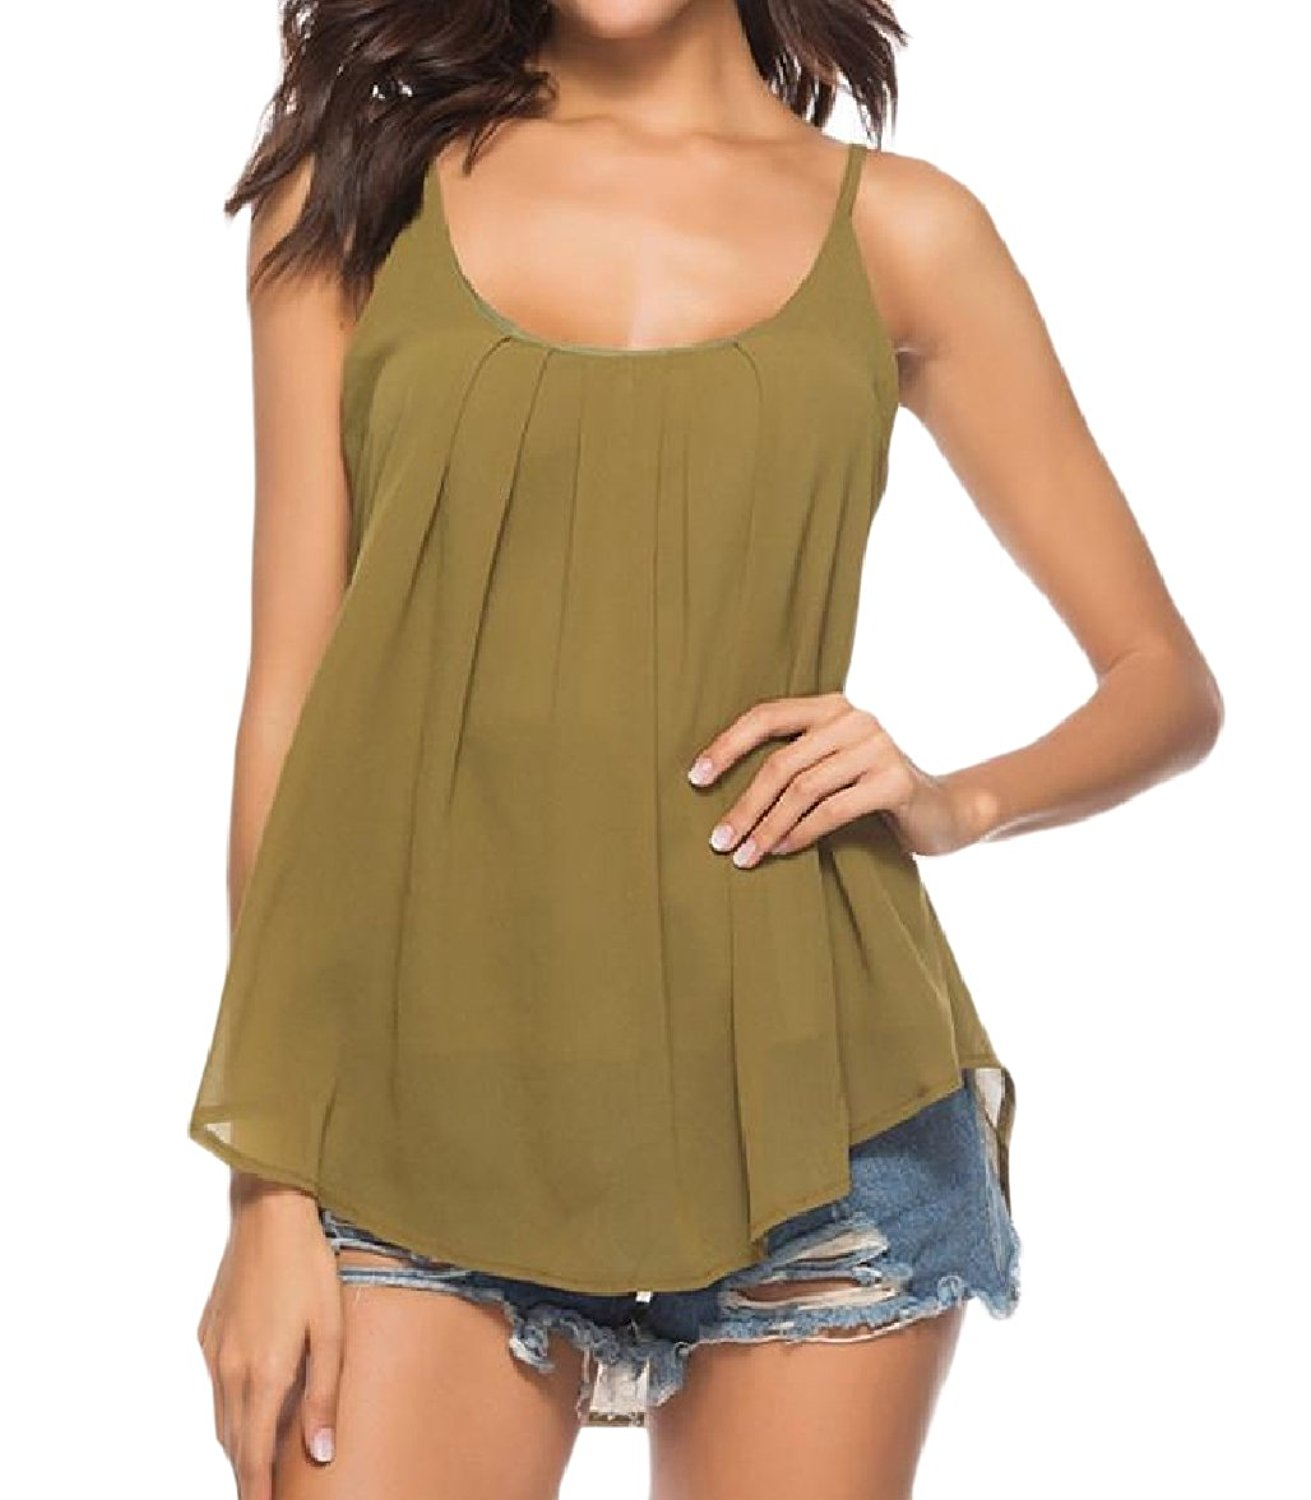 Zimaes-Women Sling Sleeveless Relaxed Chiffon Solid-Colored Tank Top